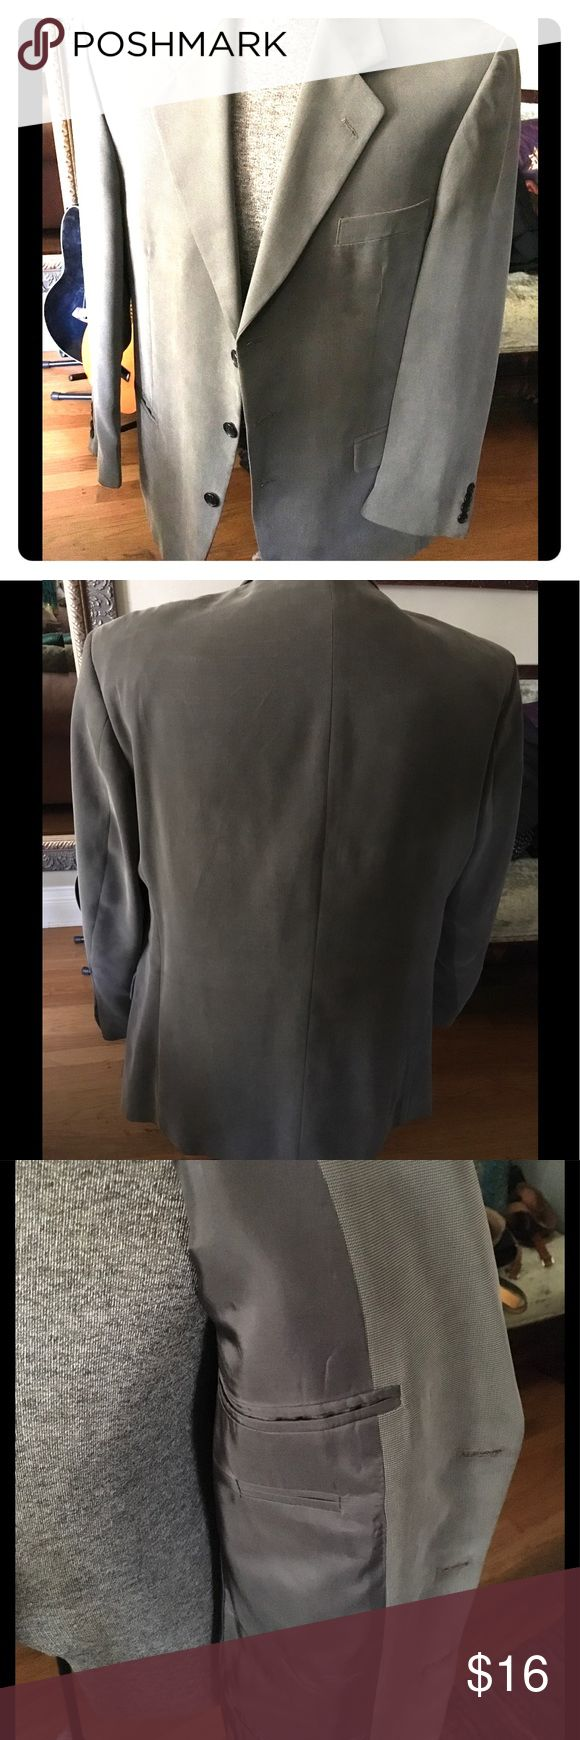 Mens Blazer Sportcoat Silky to touch. Very fluid in its drape. Flap or slit pocket styling shown in first pic. Taupe/black weaving pattern. 42R. Suits & Blazers Sport Coats & Blazers